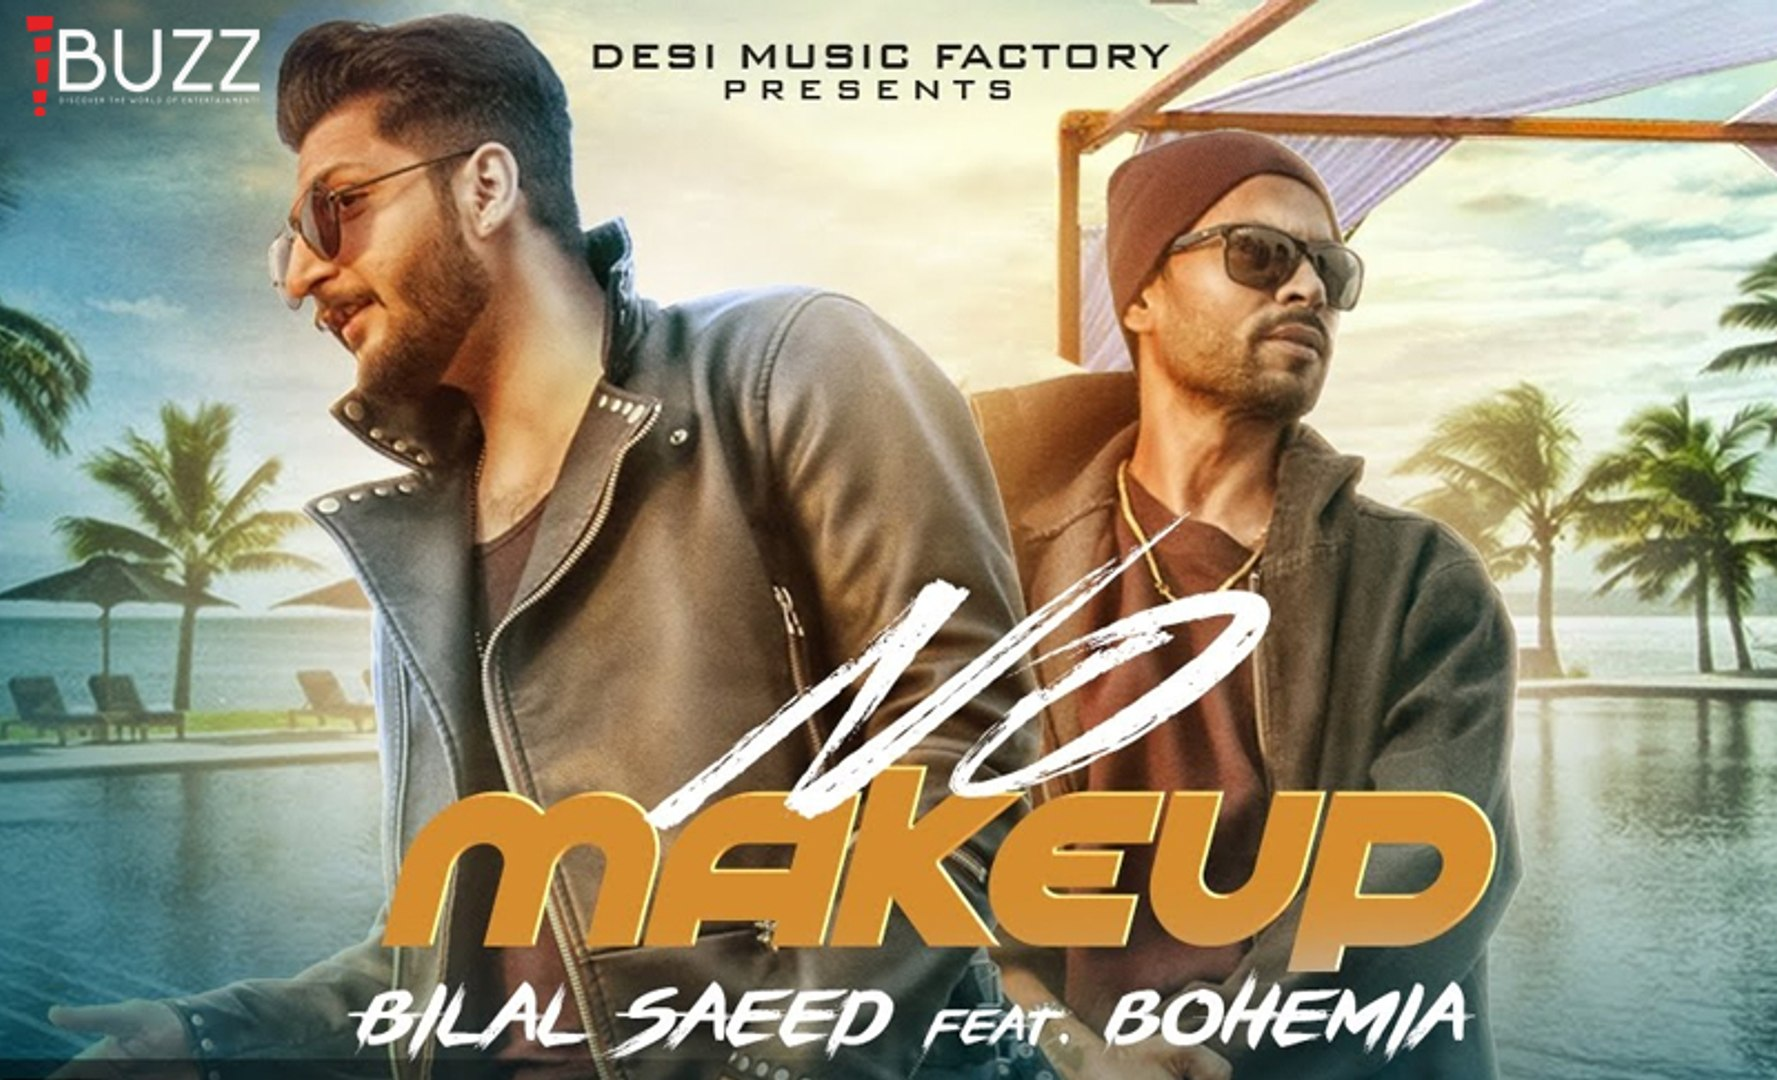 No Makeup Full Video Song  - Bilal Saeed Ft. Bohemia -  Bloodline Music  - Official Music 2017